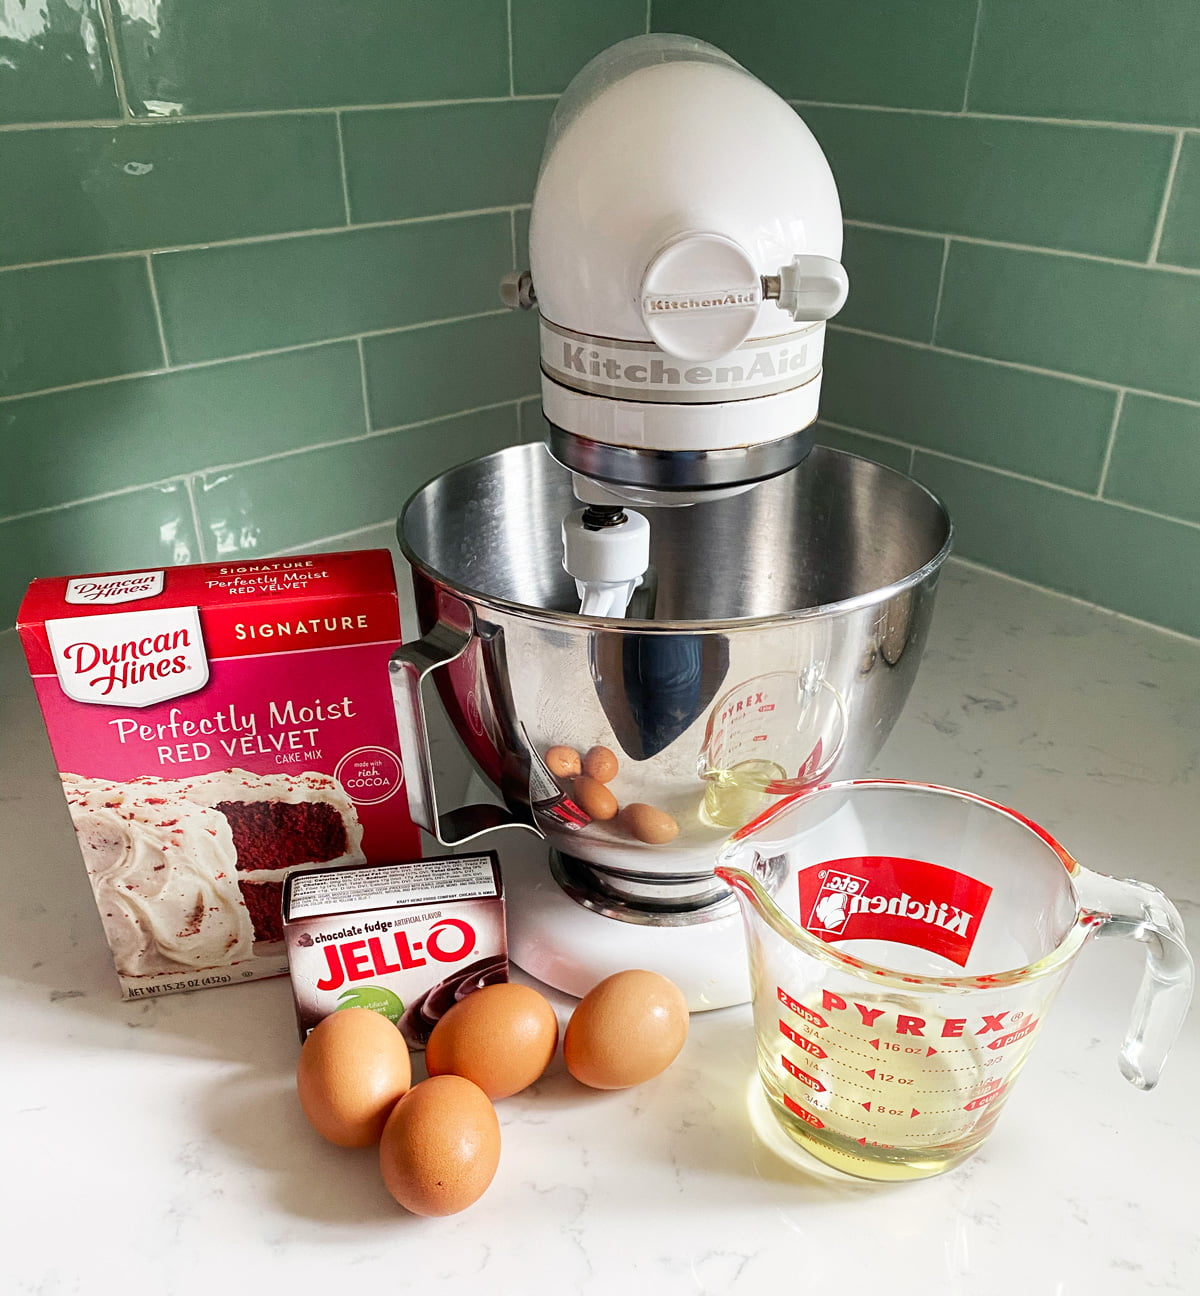 Red Velvet Bundt Cake ingredients